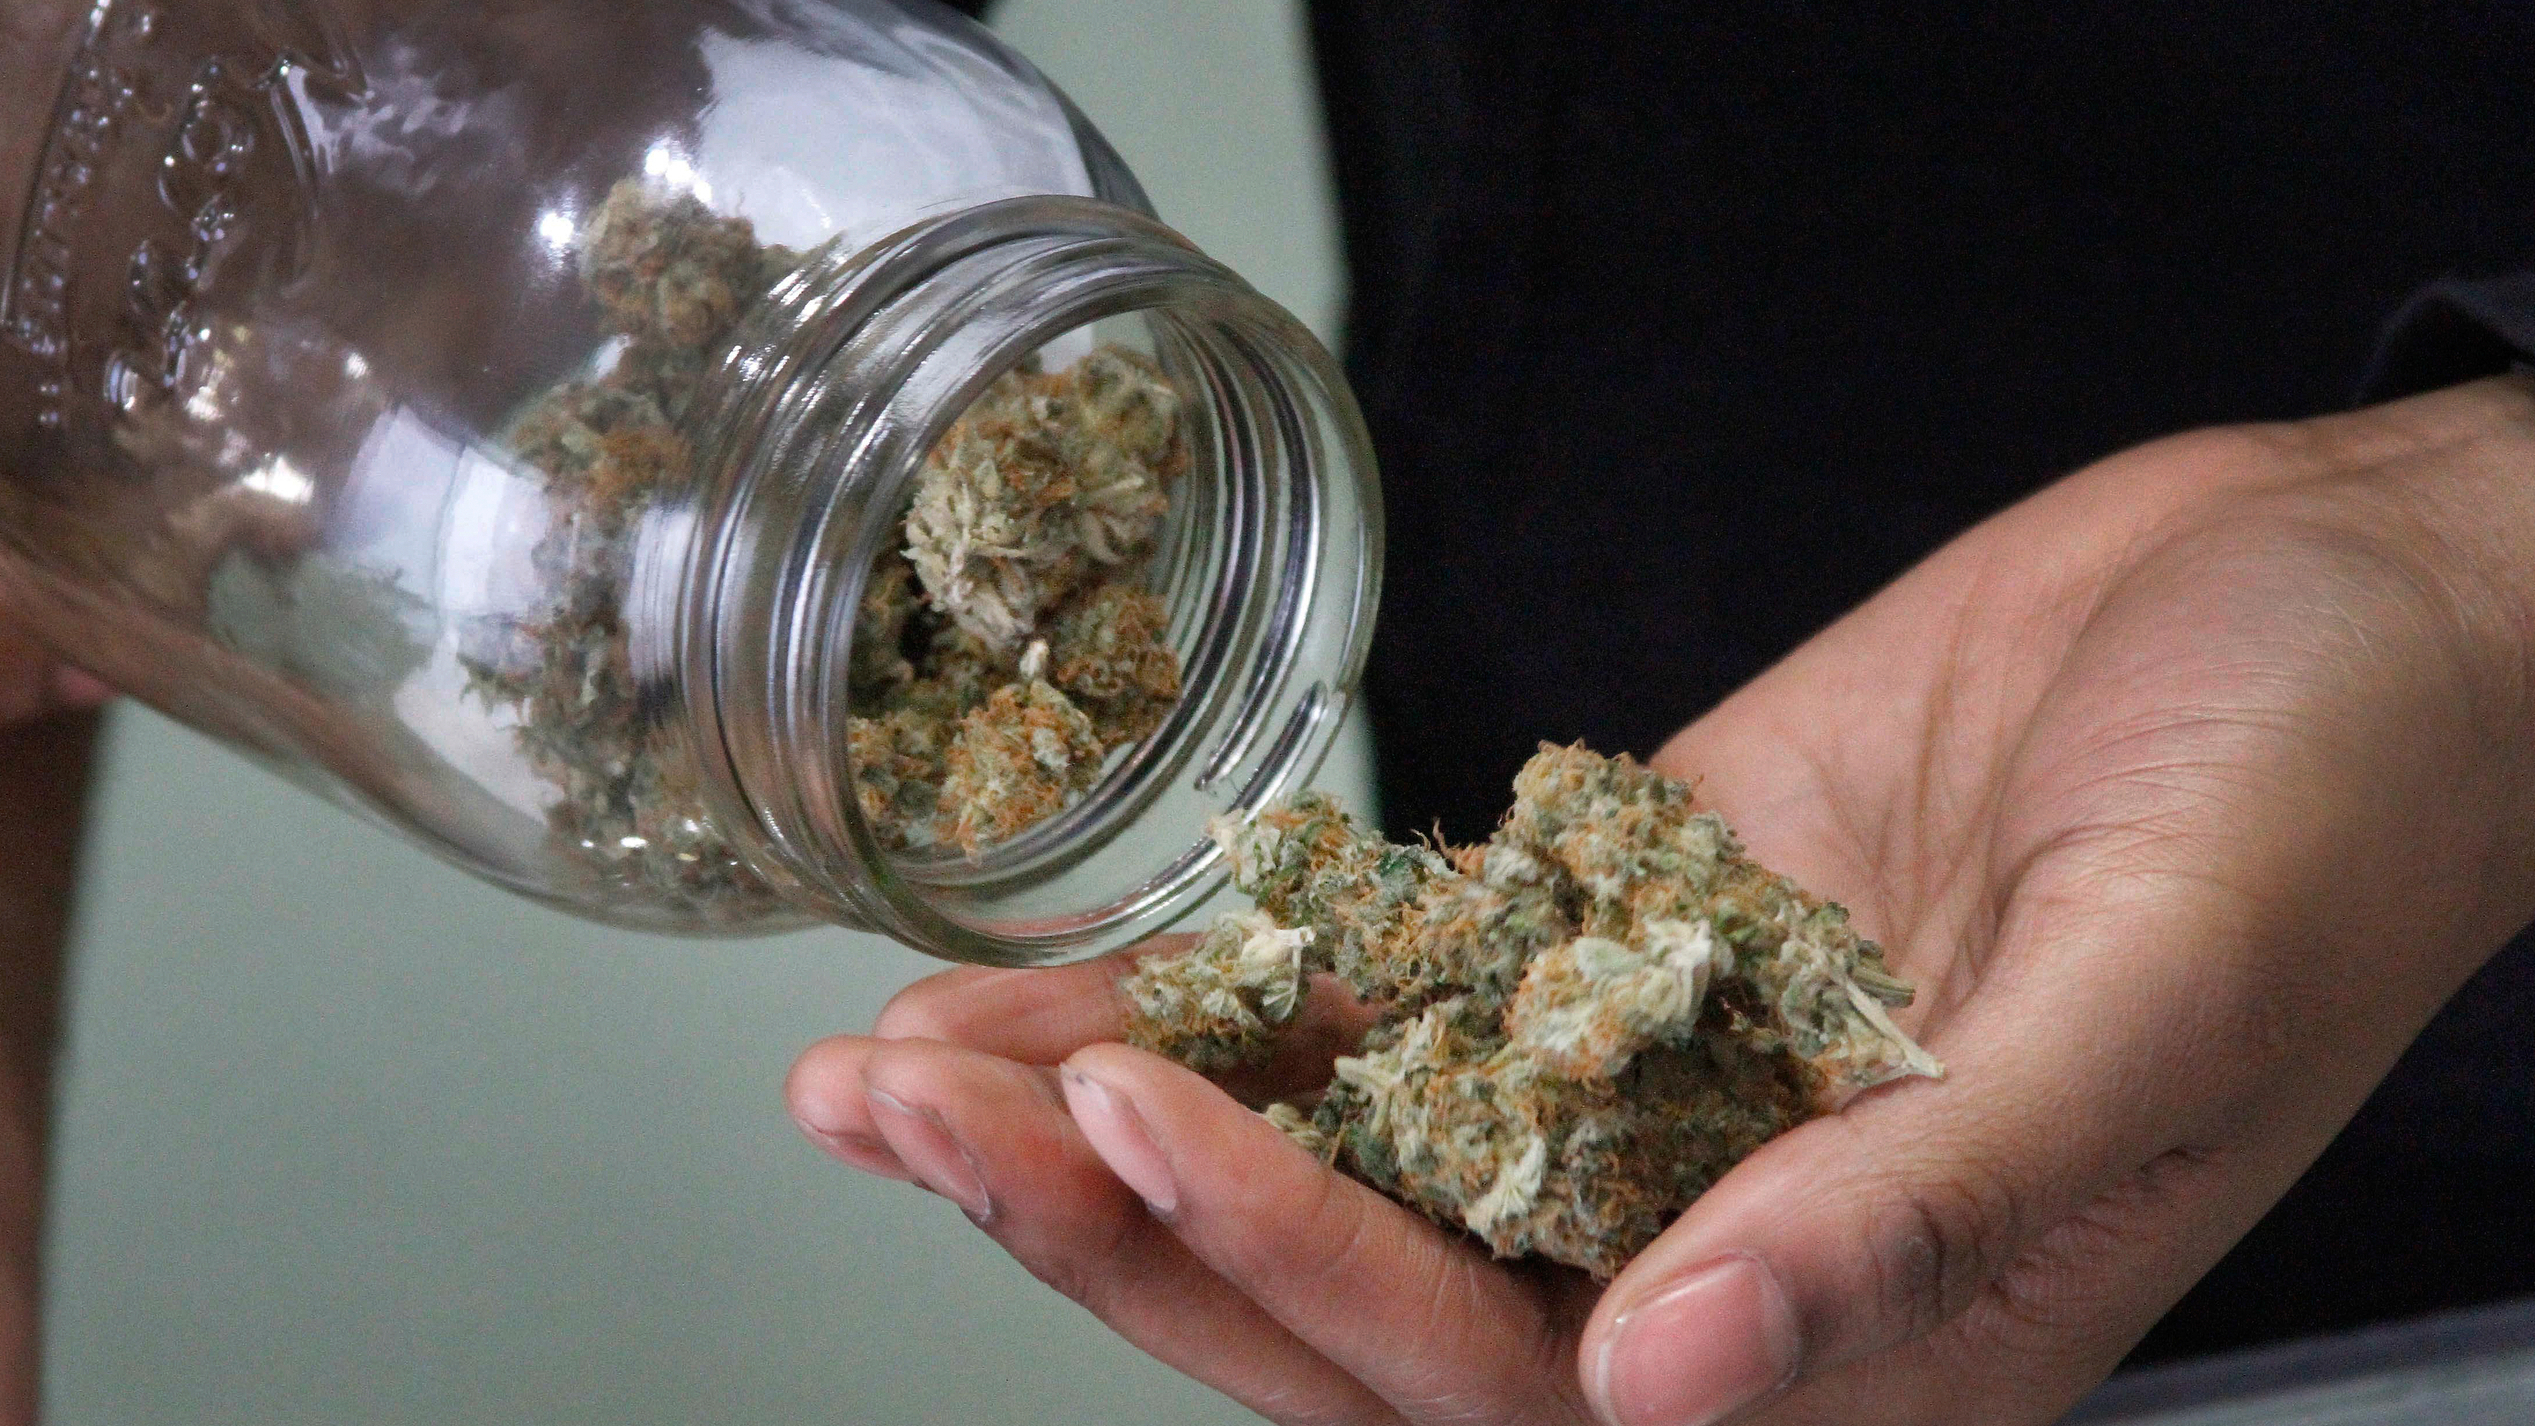 Alaska legalized pot this year and is the first state to have pot cafes where people can consume marijuana.